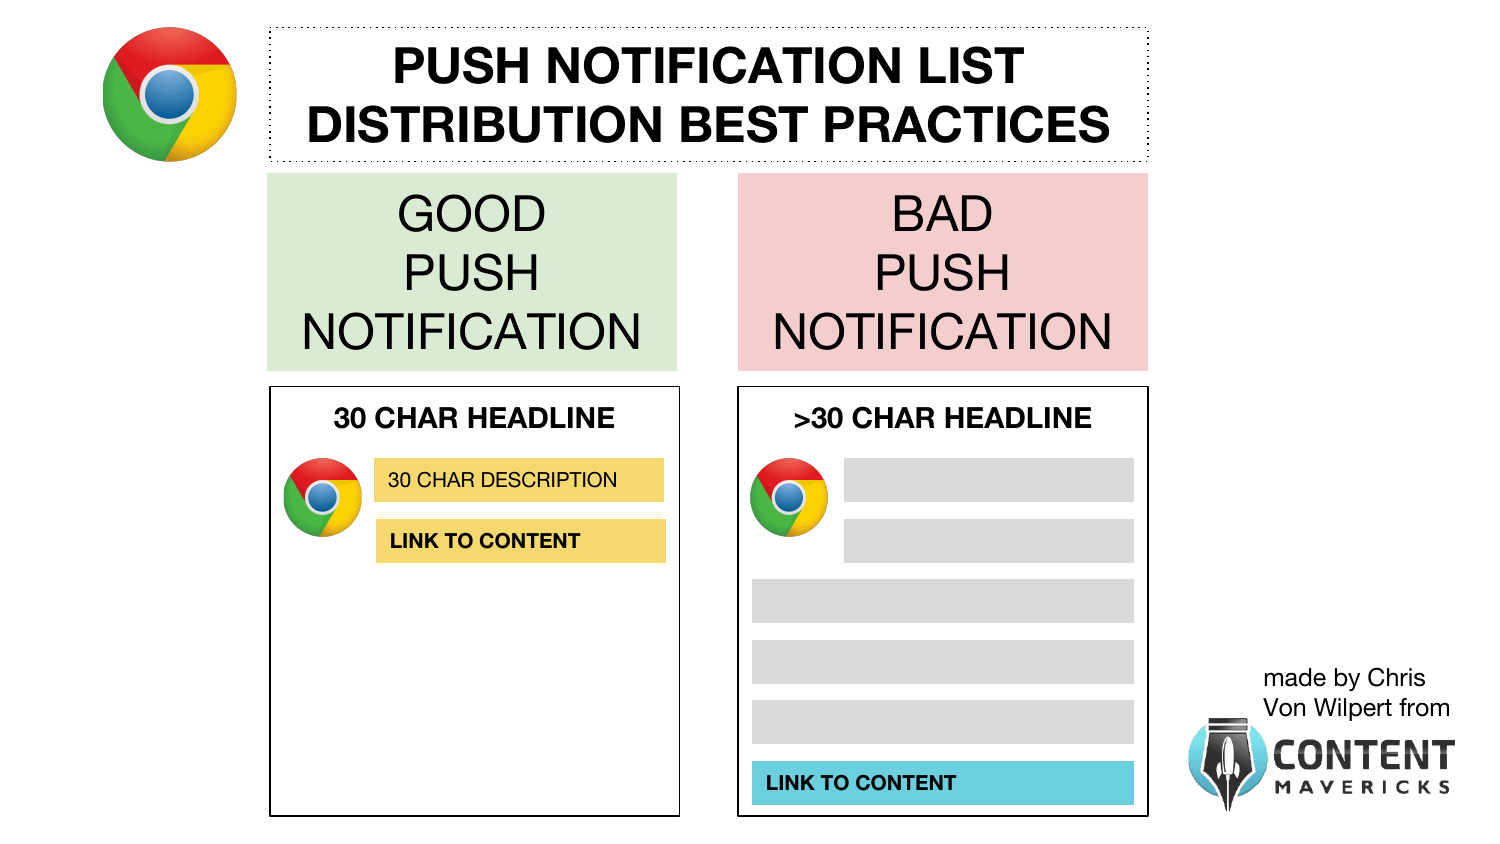 push notification list content distribution best practices image